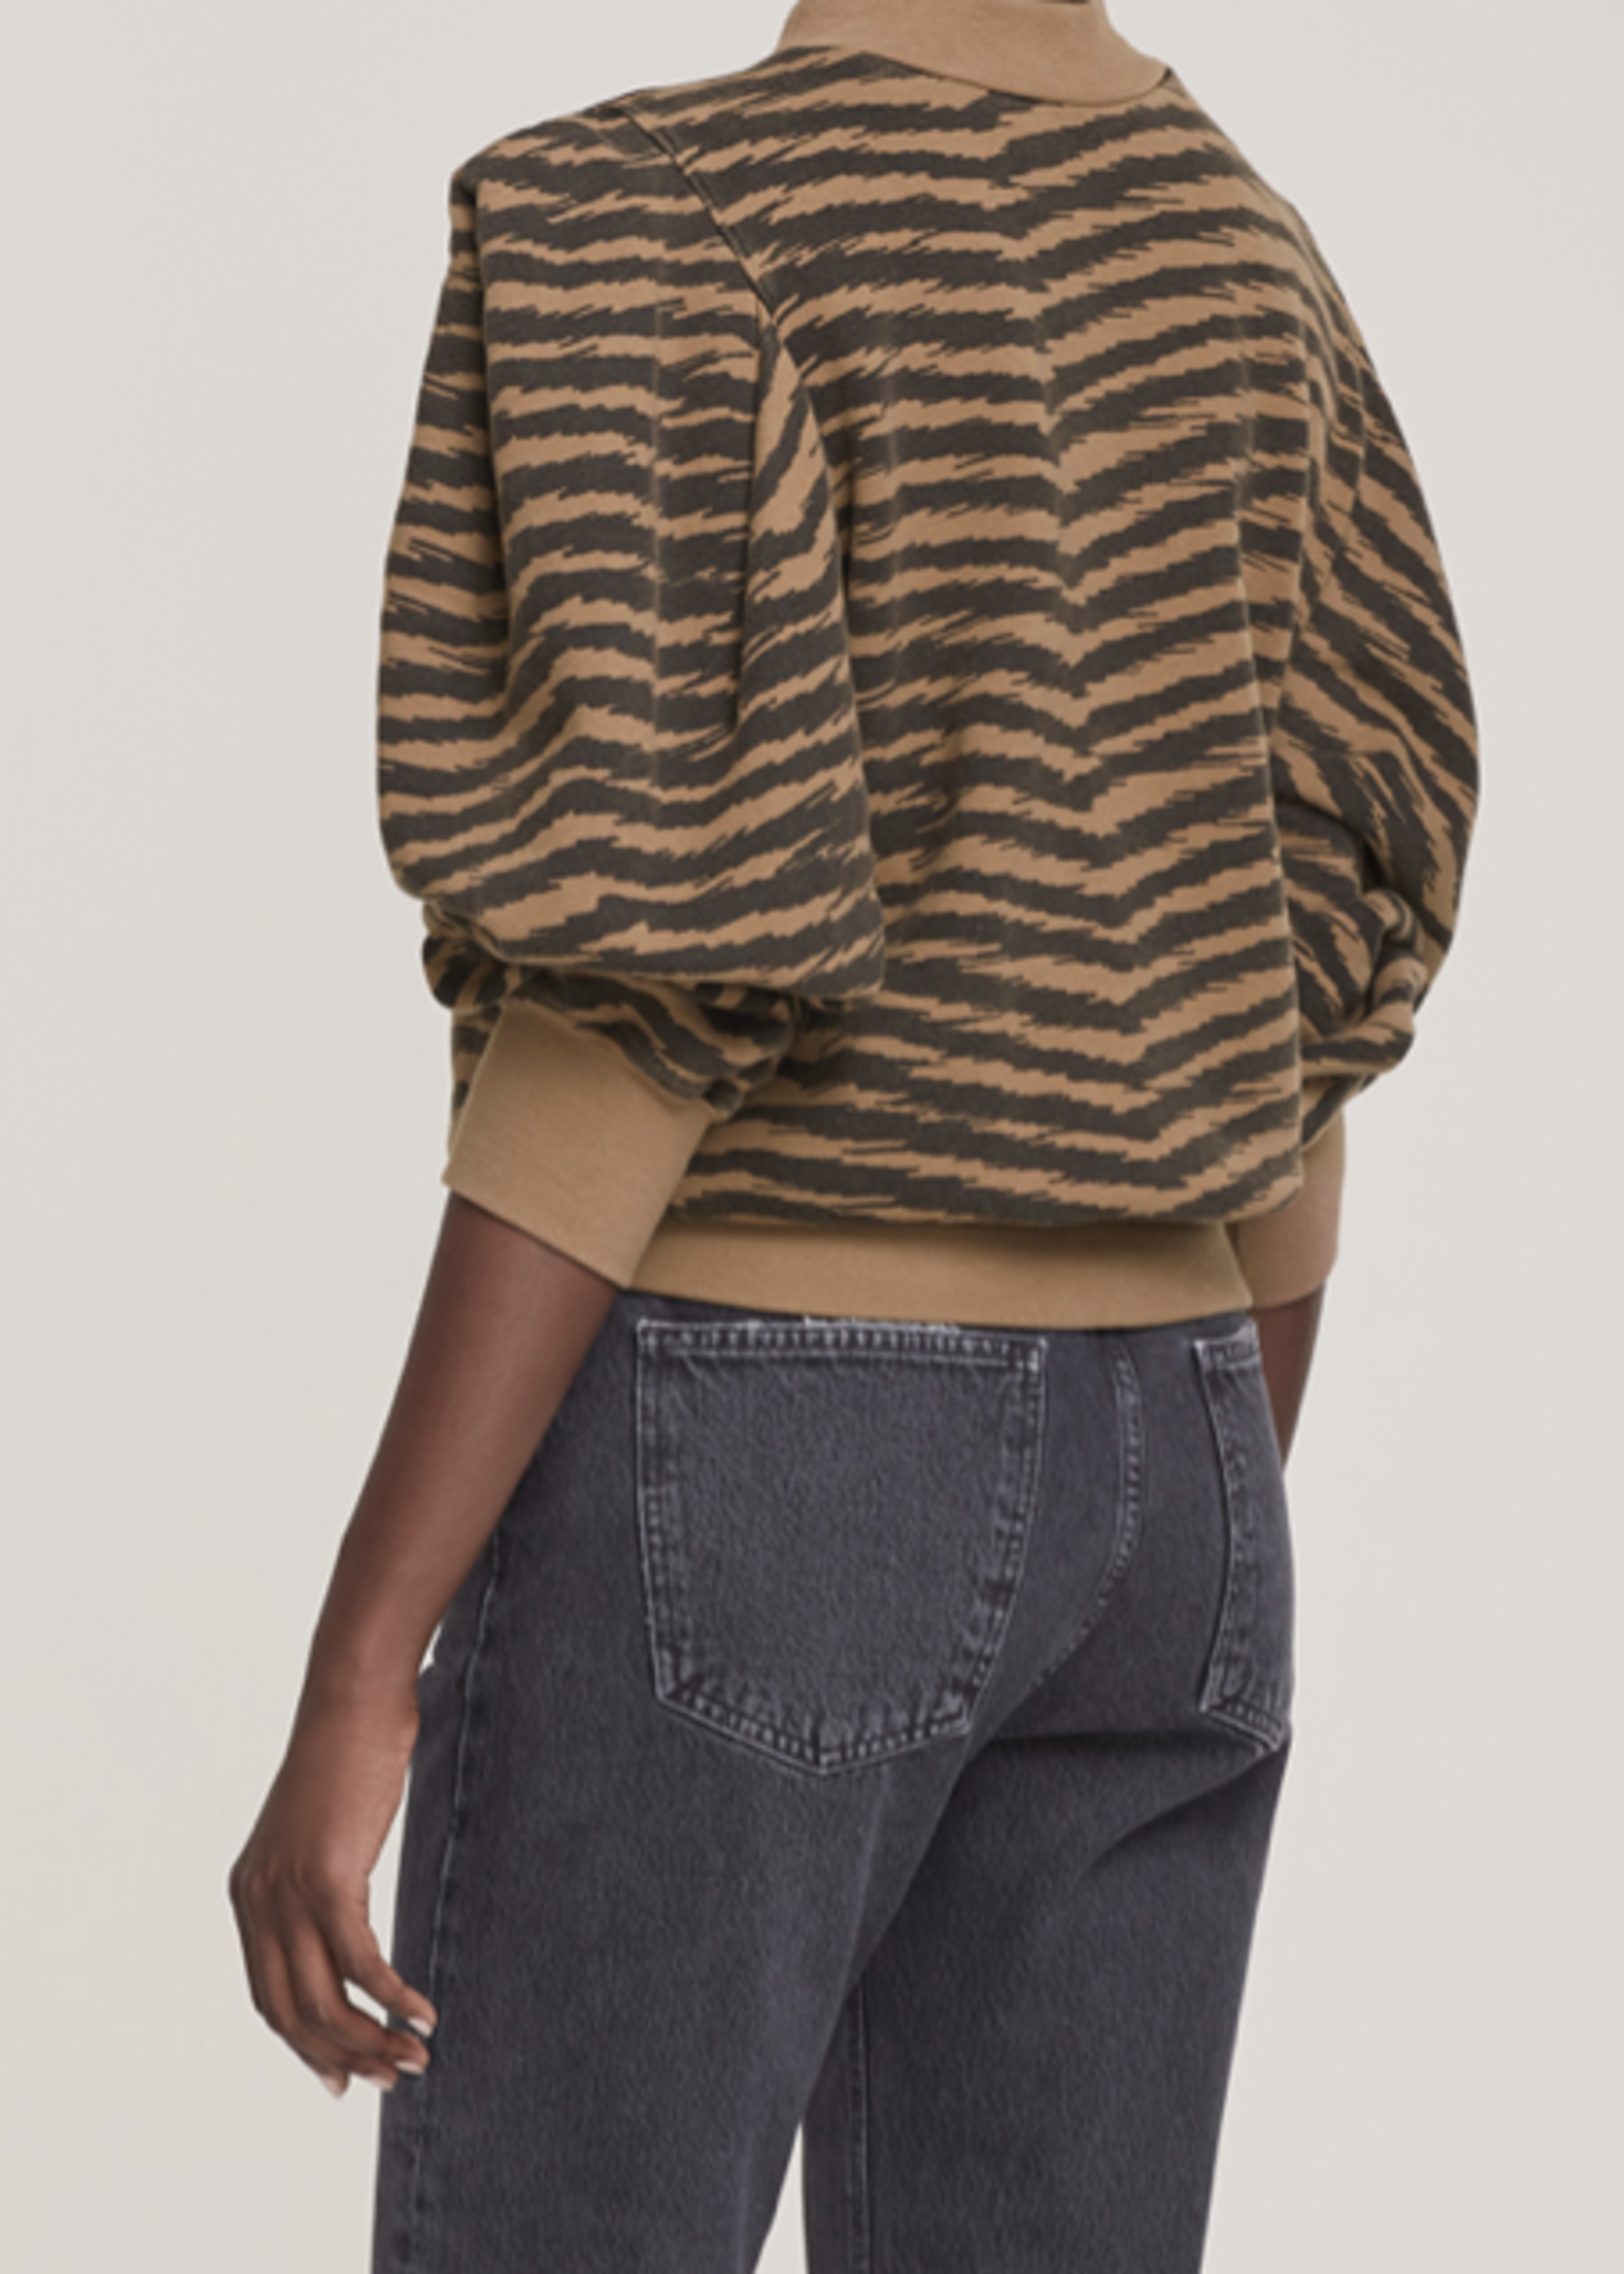 AGOLDE AGOLDE Fold Sleeve Sweatshirt in Serpentine